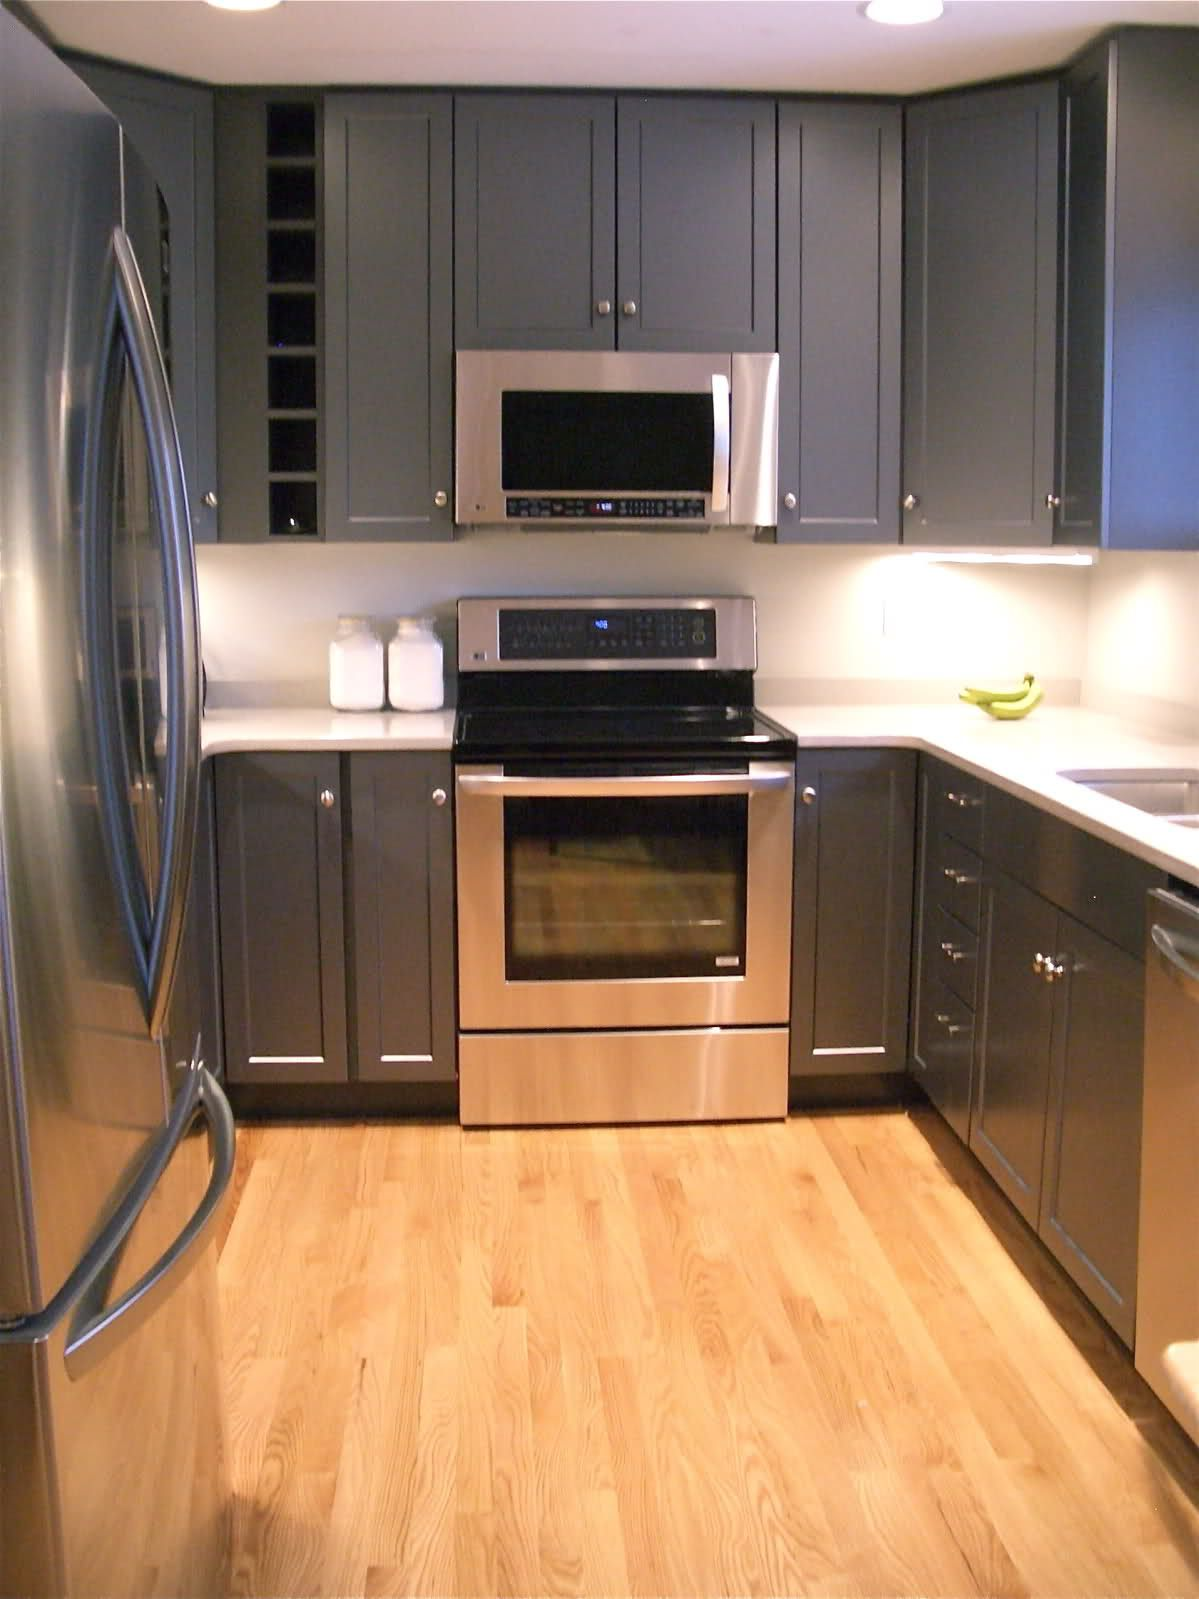 dark gray cabinets with white quartz countertops our house kitchen cabinets wood floor. Black Bedroom Furniture Sets. Home Design Ideas